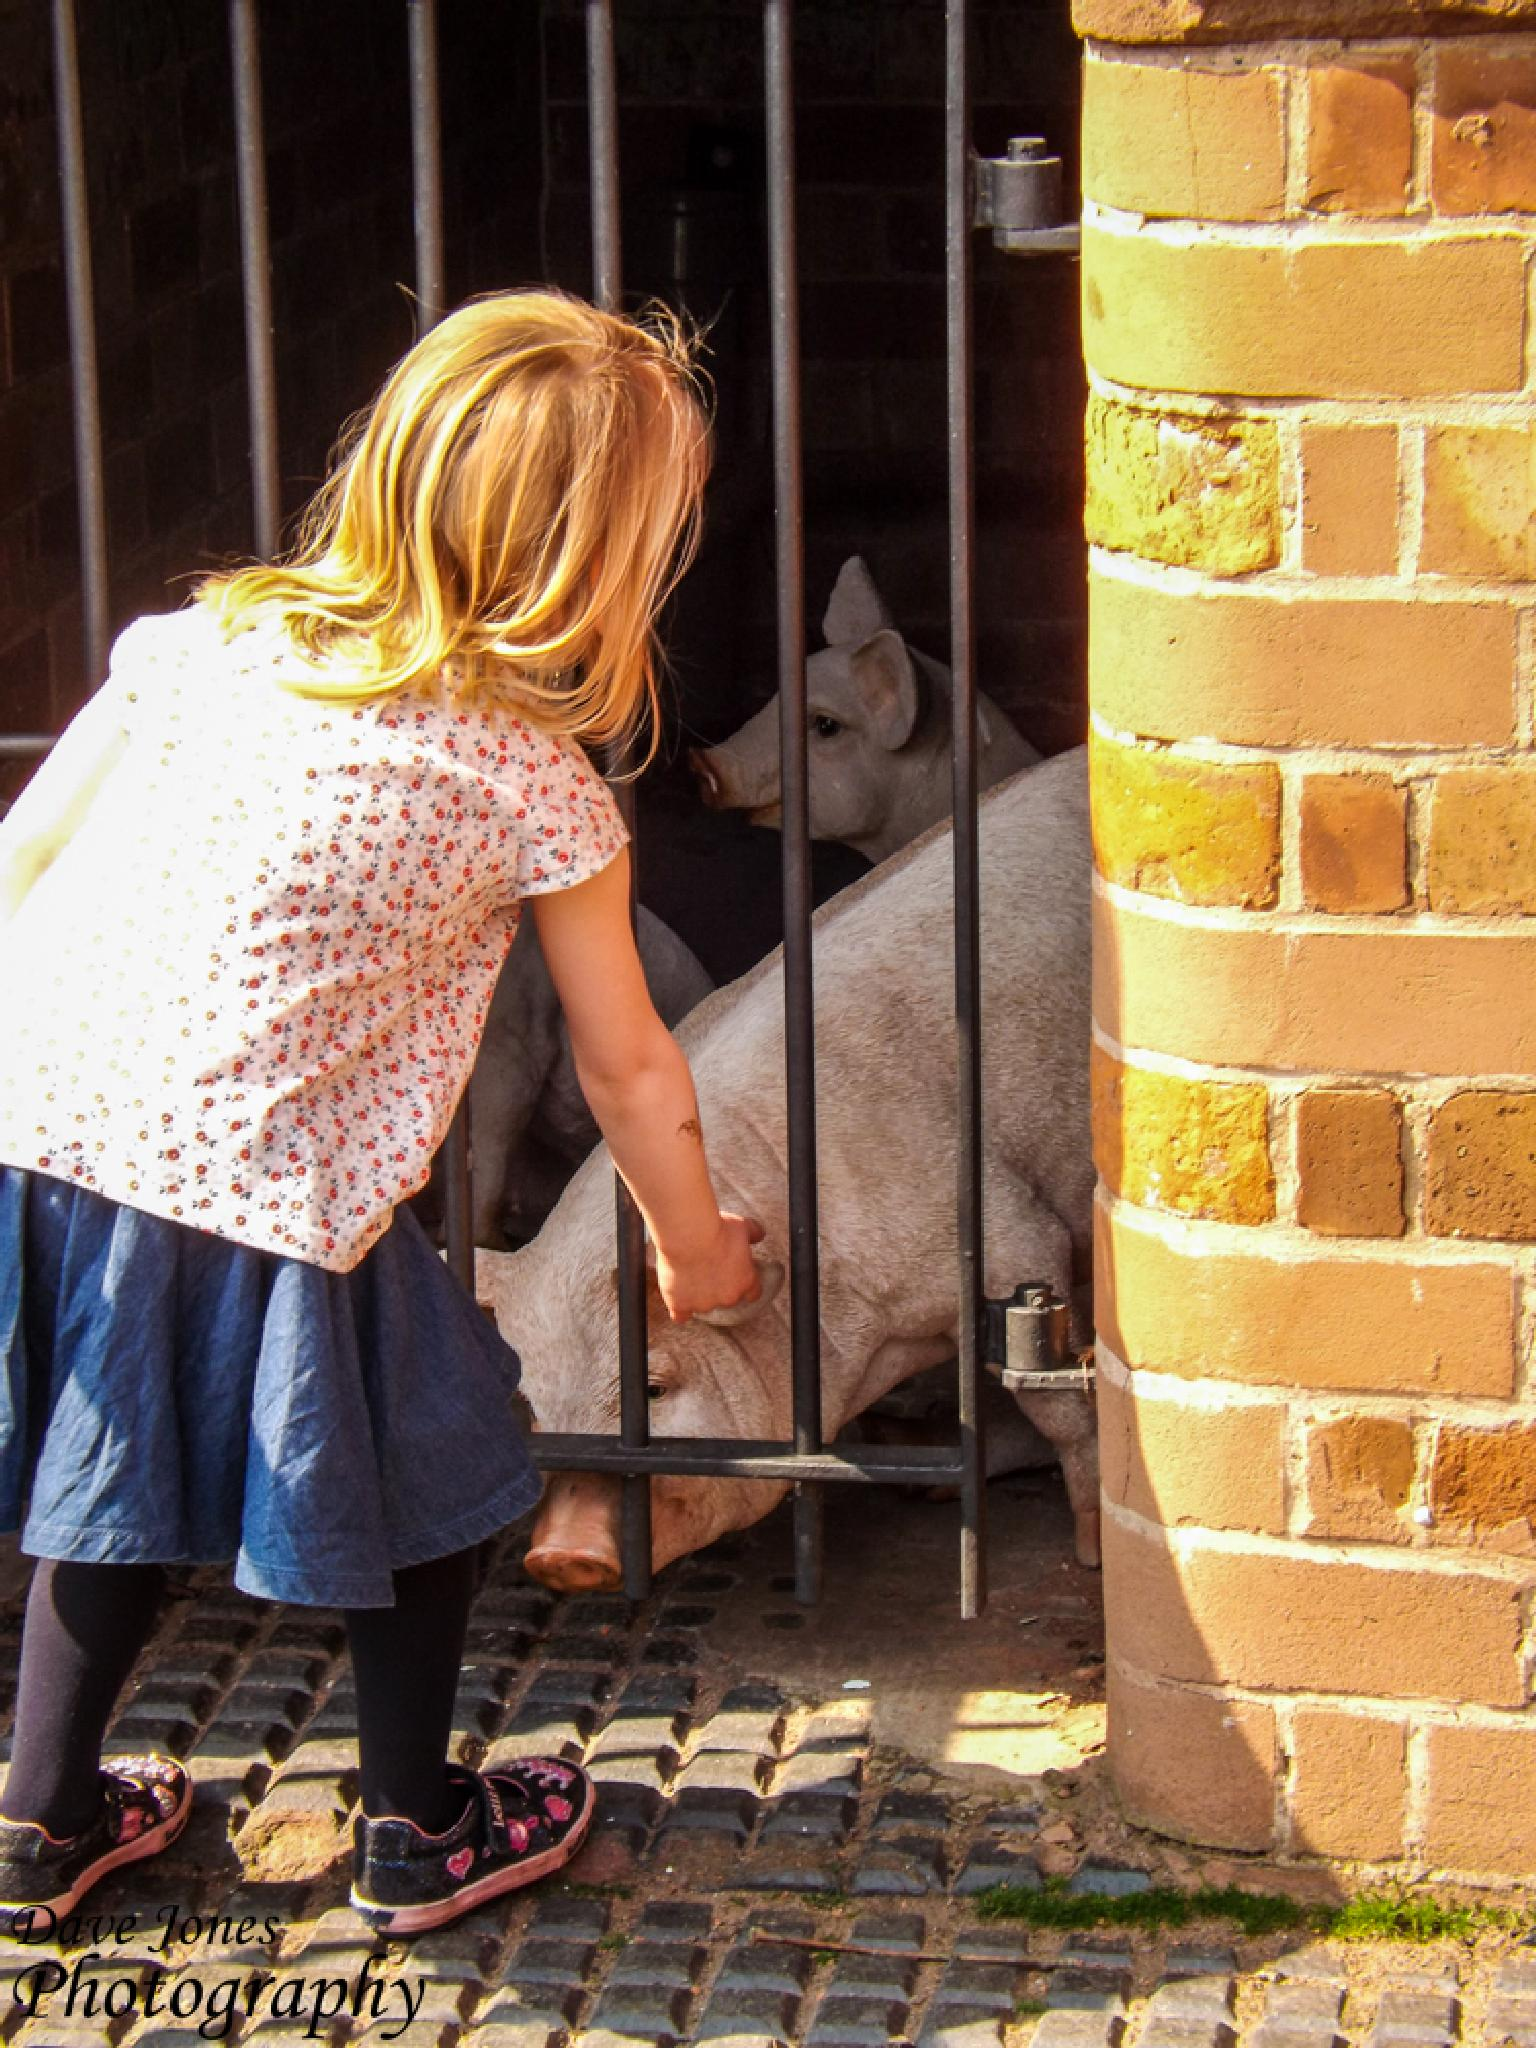 Pet the Pig by DaveJonesPhotography